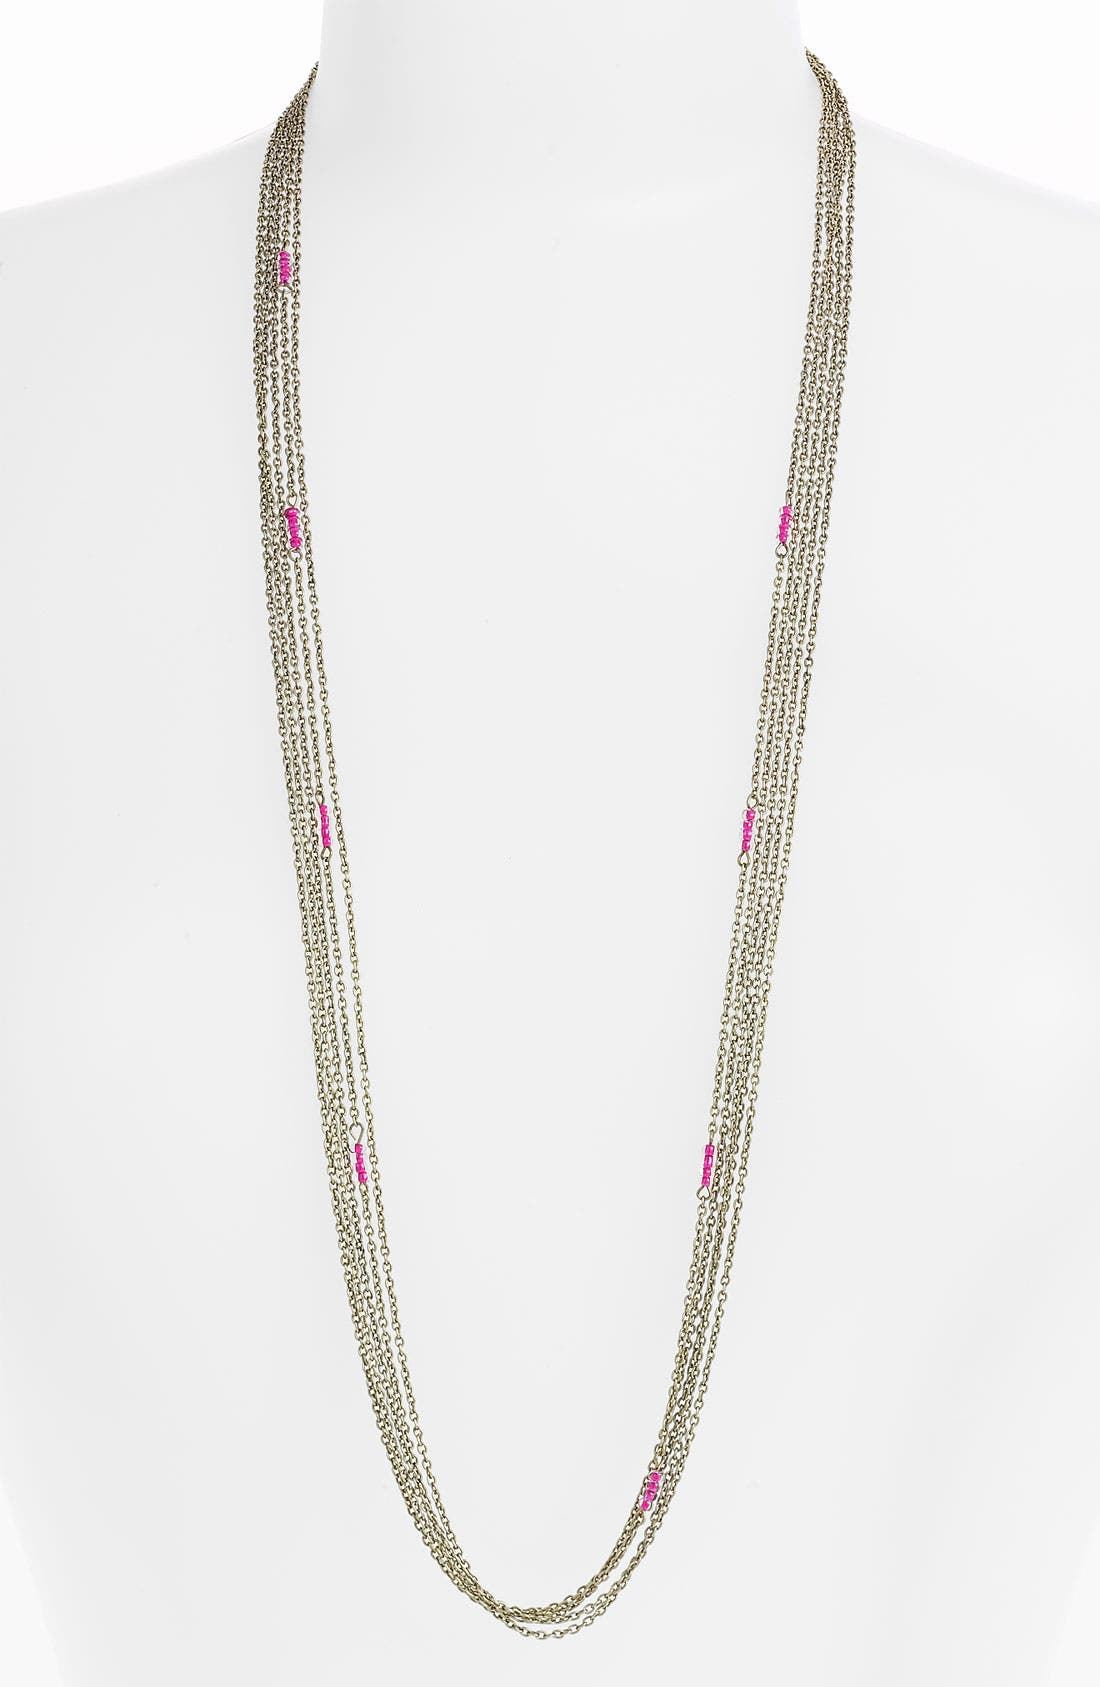 Main Image - Stephan & Co. Multi Chain Necklace